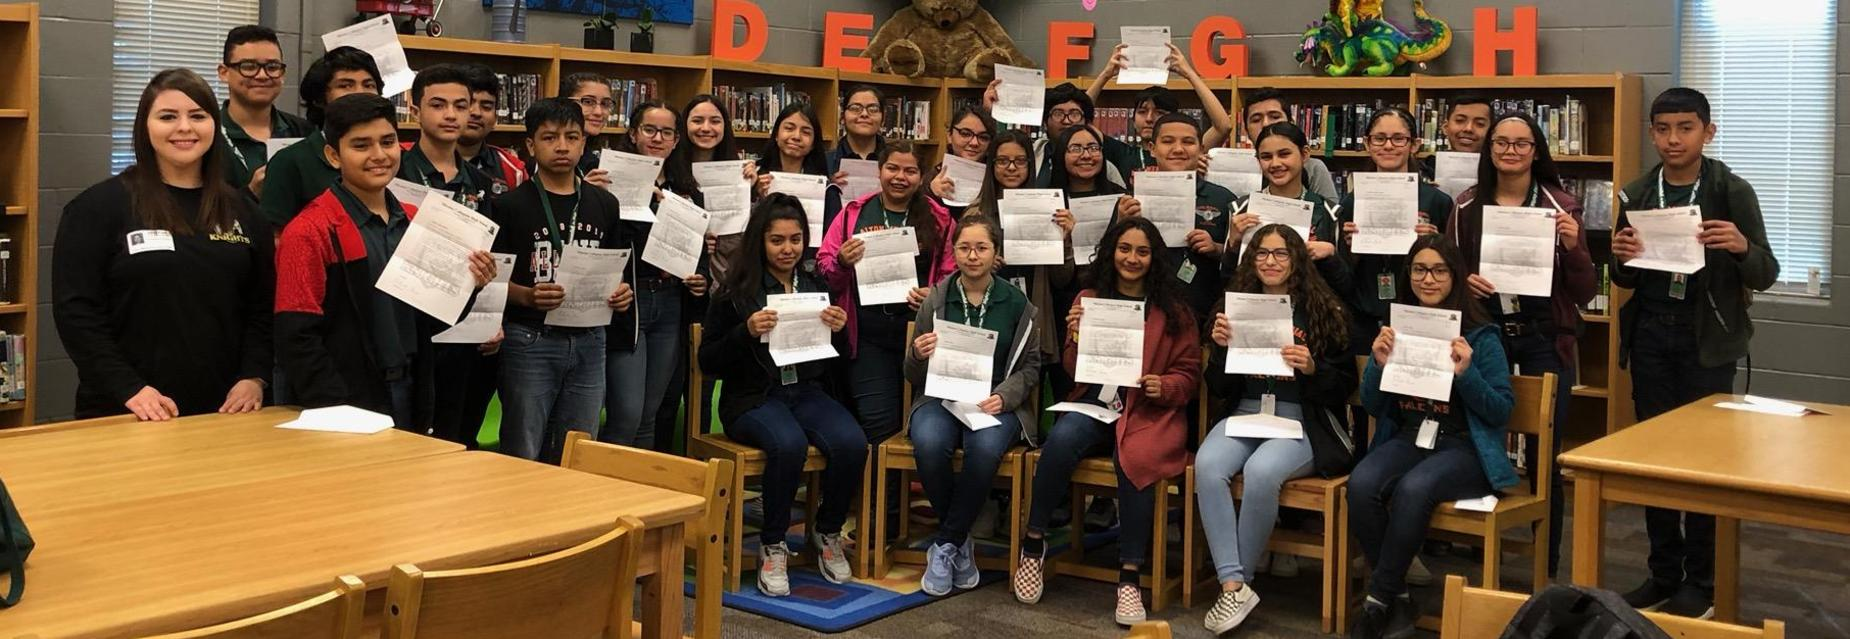 AMJH 2019-2020 Collegiate acceptance letter recipients